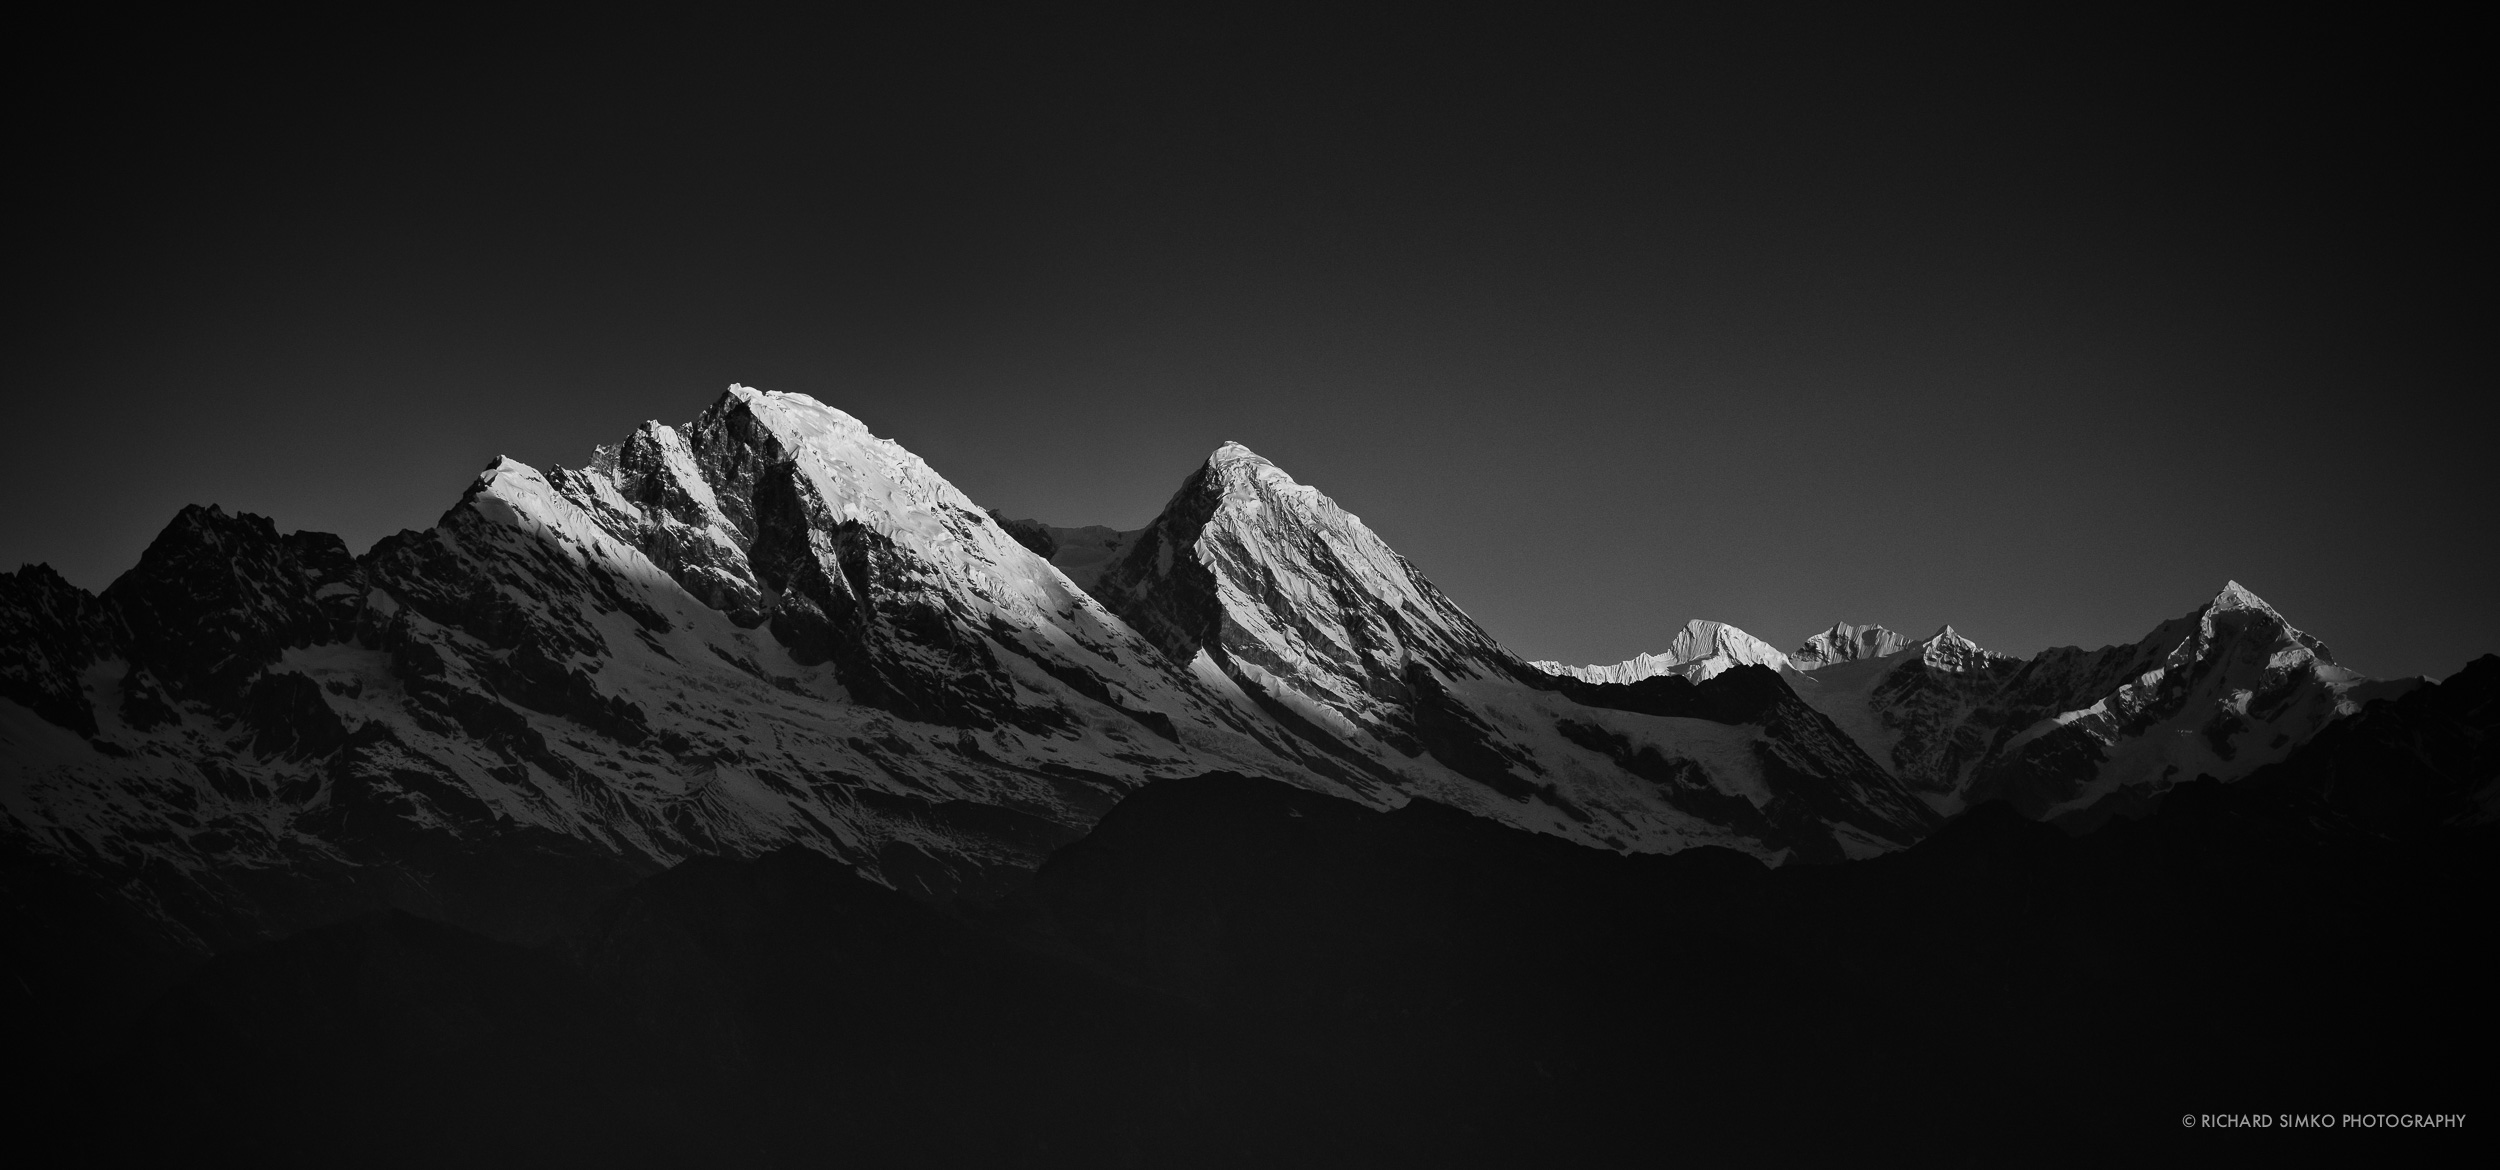 Himalayan sunriseis probably my most favorite image of 2014.Taken from village of Chutanga overlooking the deep valley the first rays of sun are hitting the snow capped peaks of Himalayas. Image is very graphical and simple and that is what I like about it the most. Conor version didn't worked that well and I realised the full potential of the image after black and white conversion.